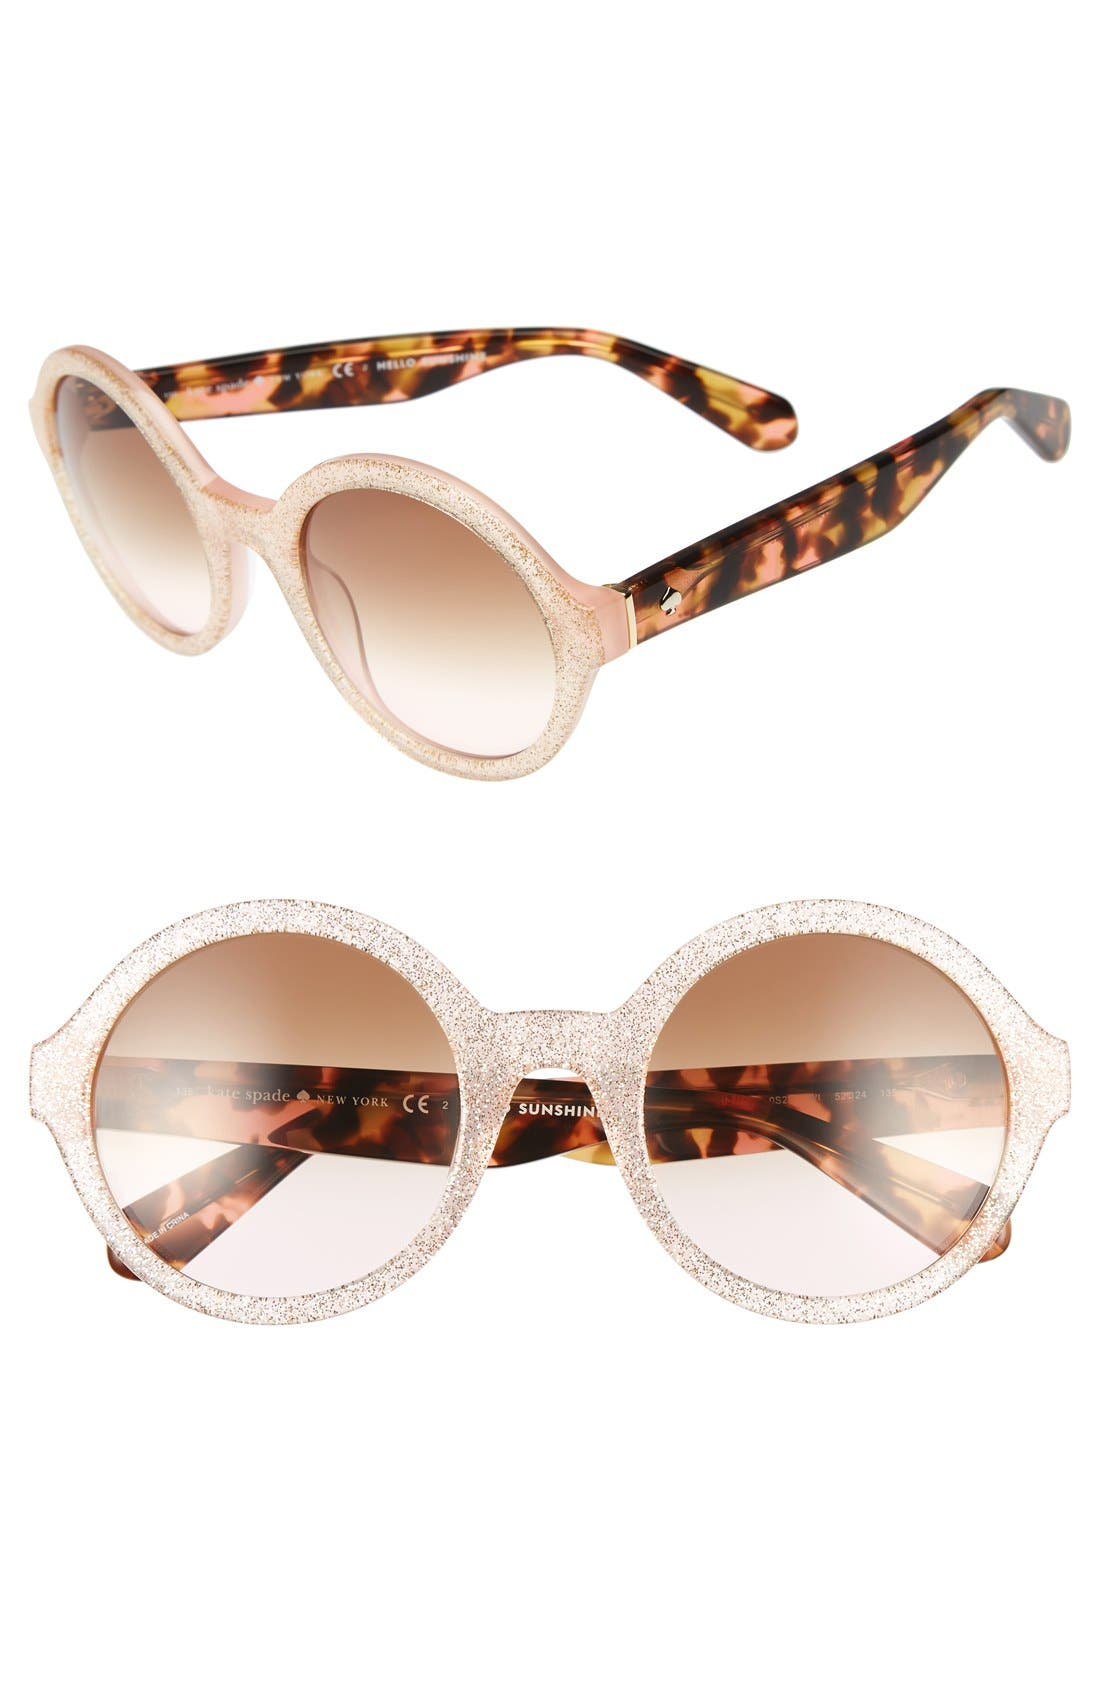 'khriss' 52mm round sunglasses,                         Main,                         color, Pink/ Gold Glitter